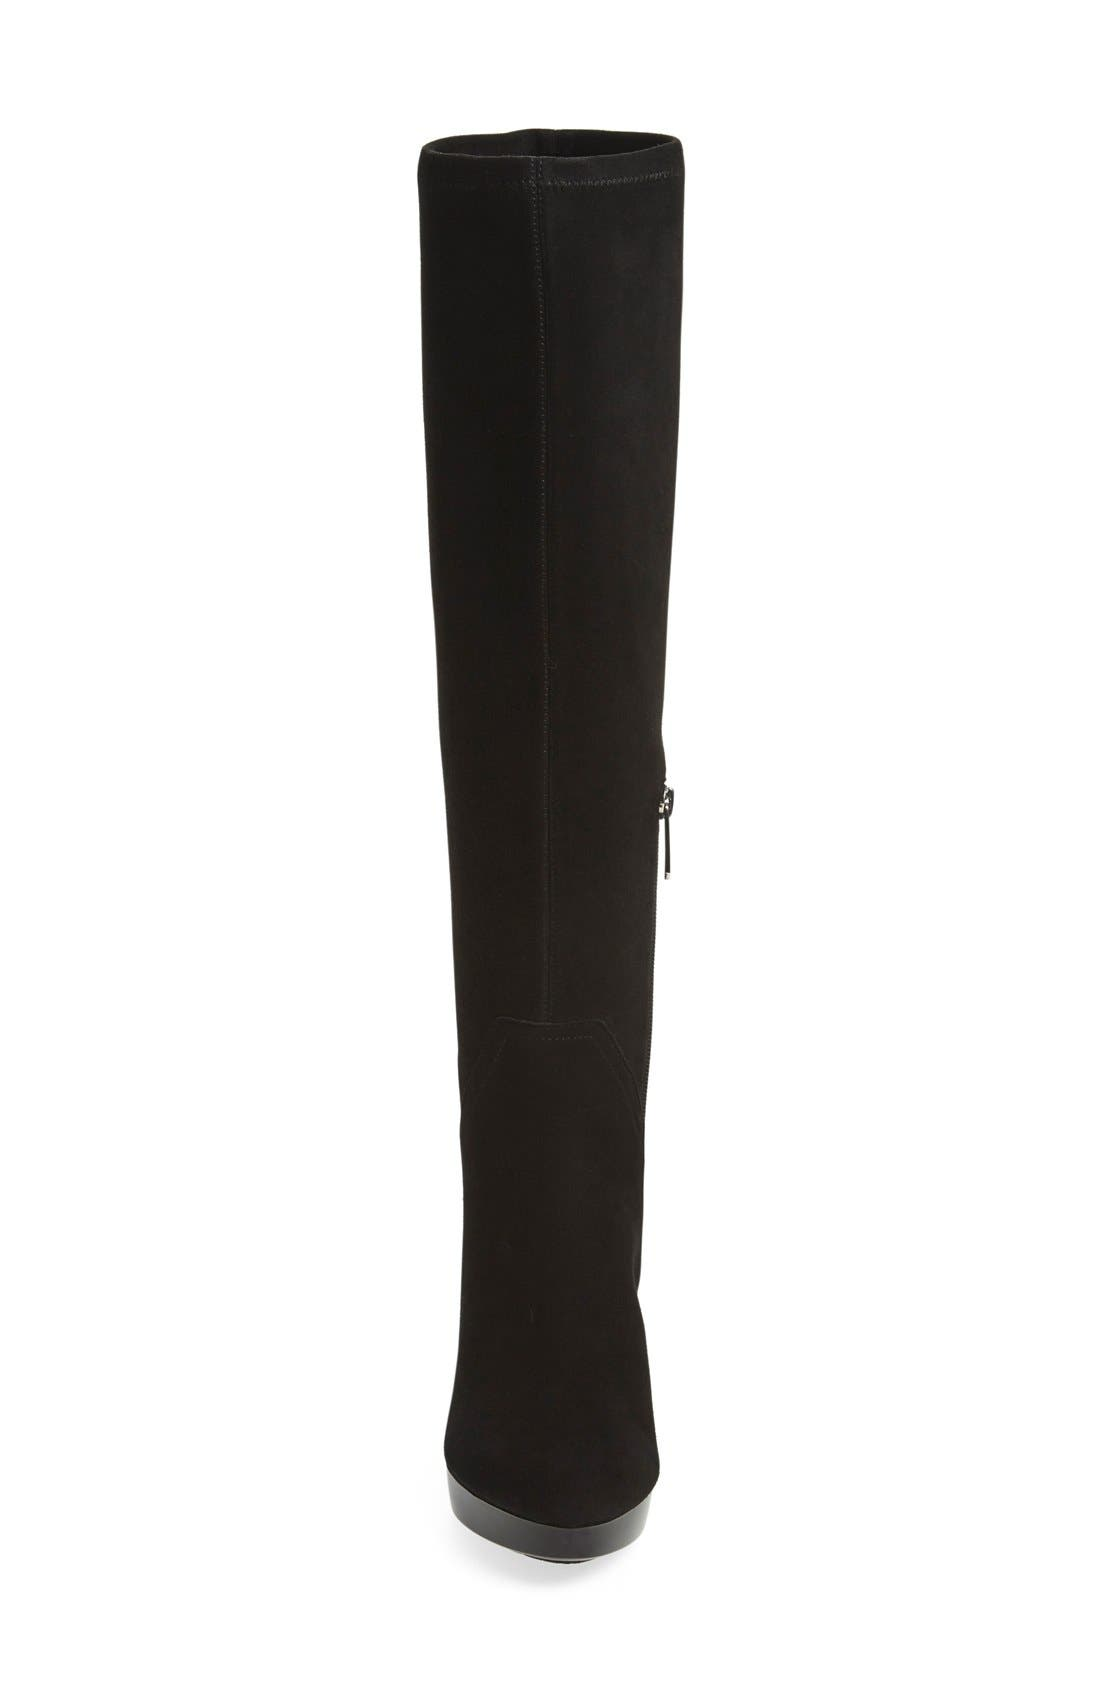 Alternate Image 3  - Donald J Pliner 'Echoe' Stretch Suede Tall Boot (Women)